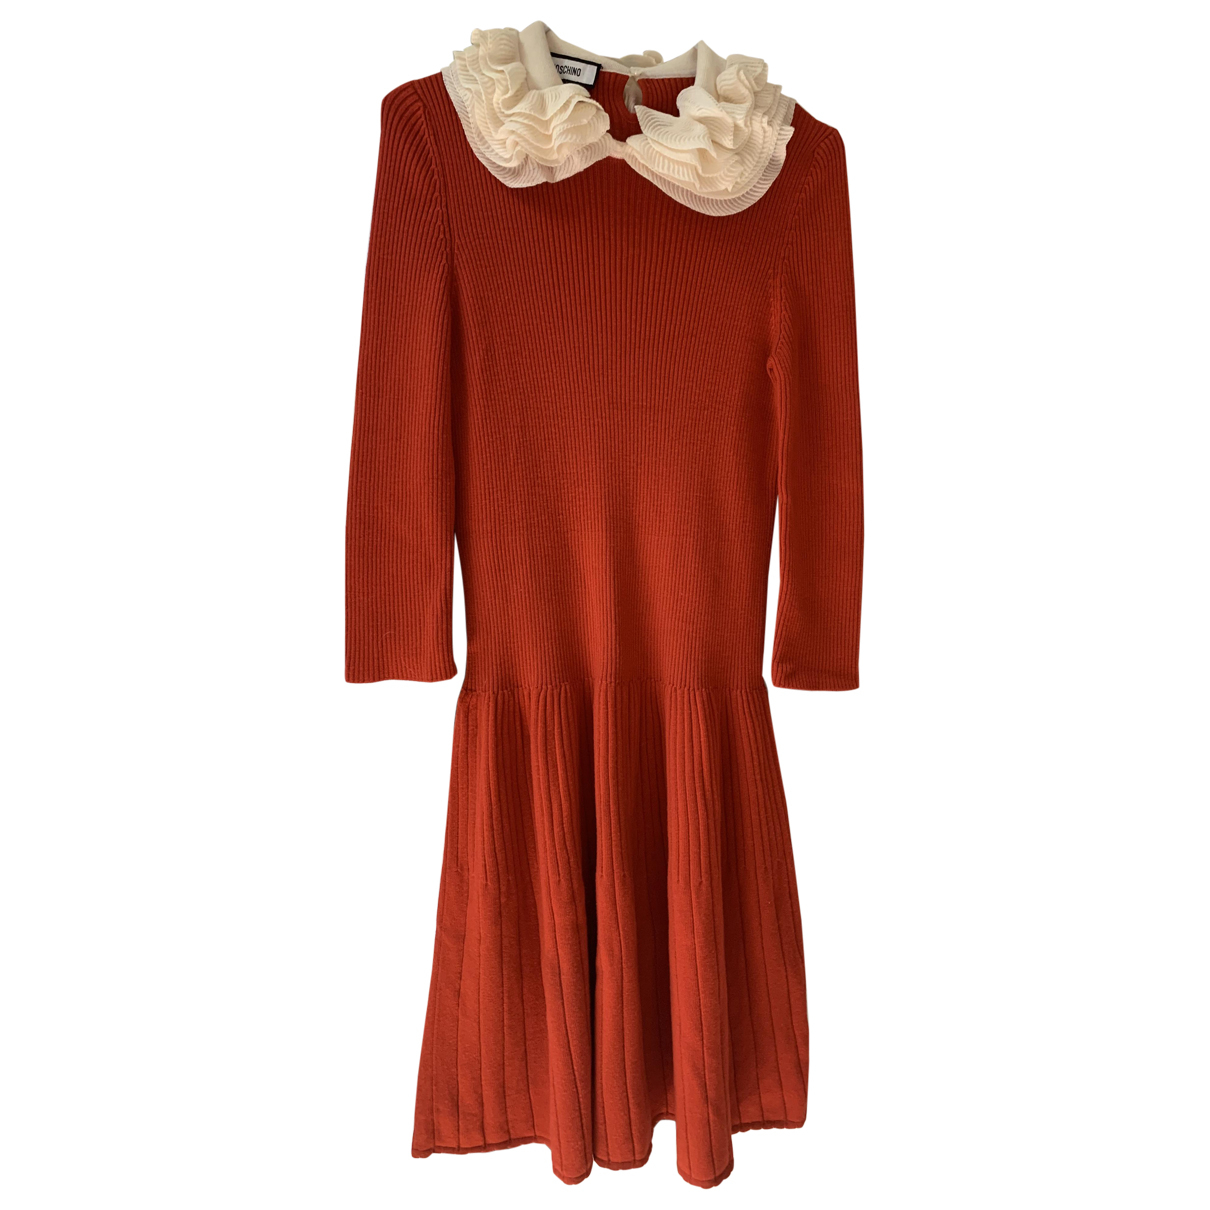 Moschino \N Kleid in  Rot Wolle